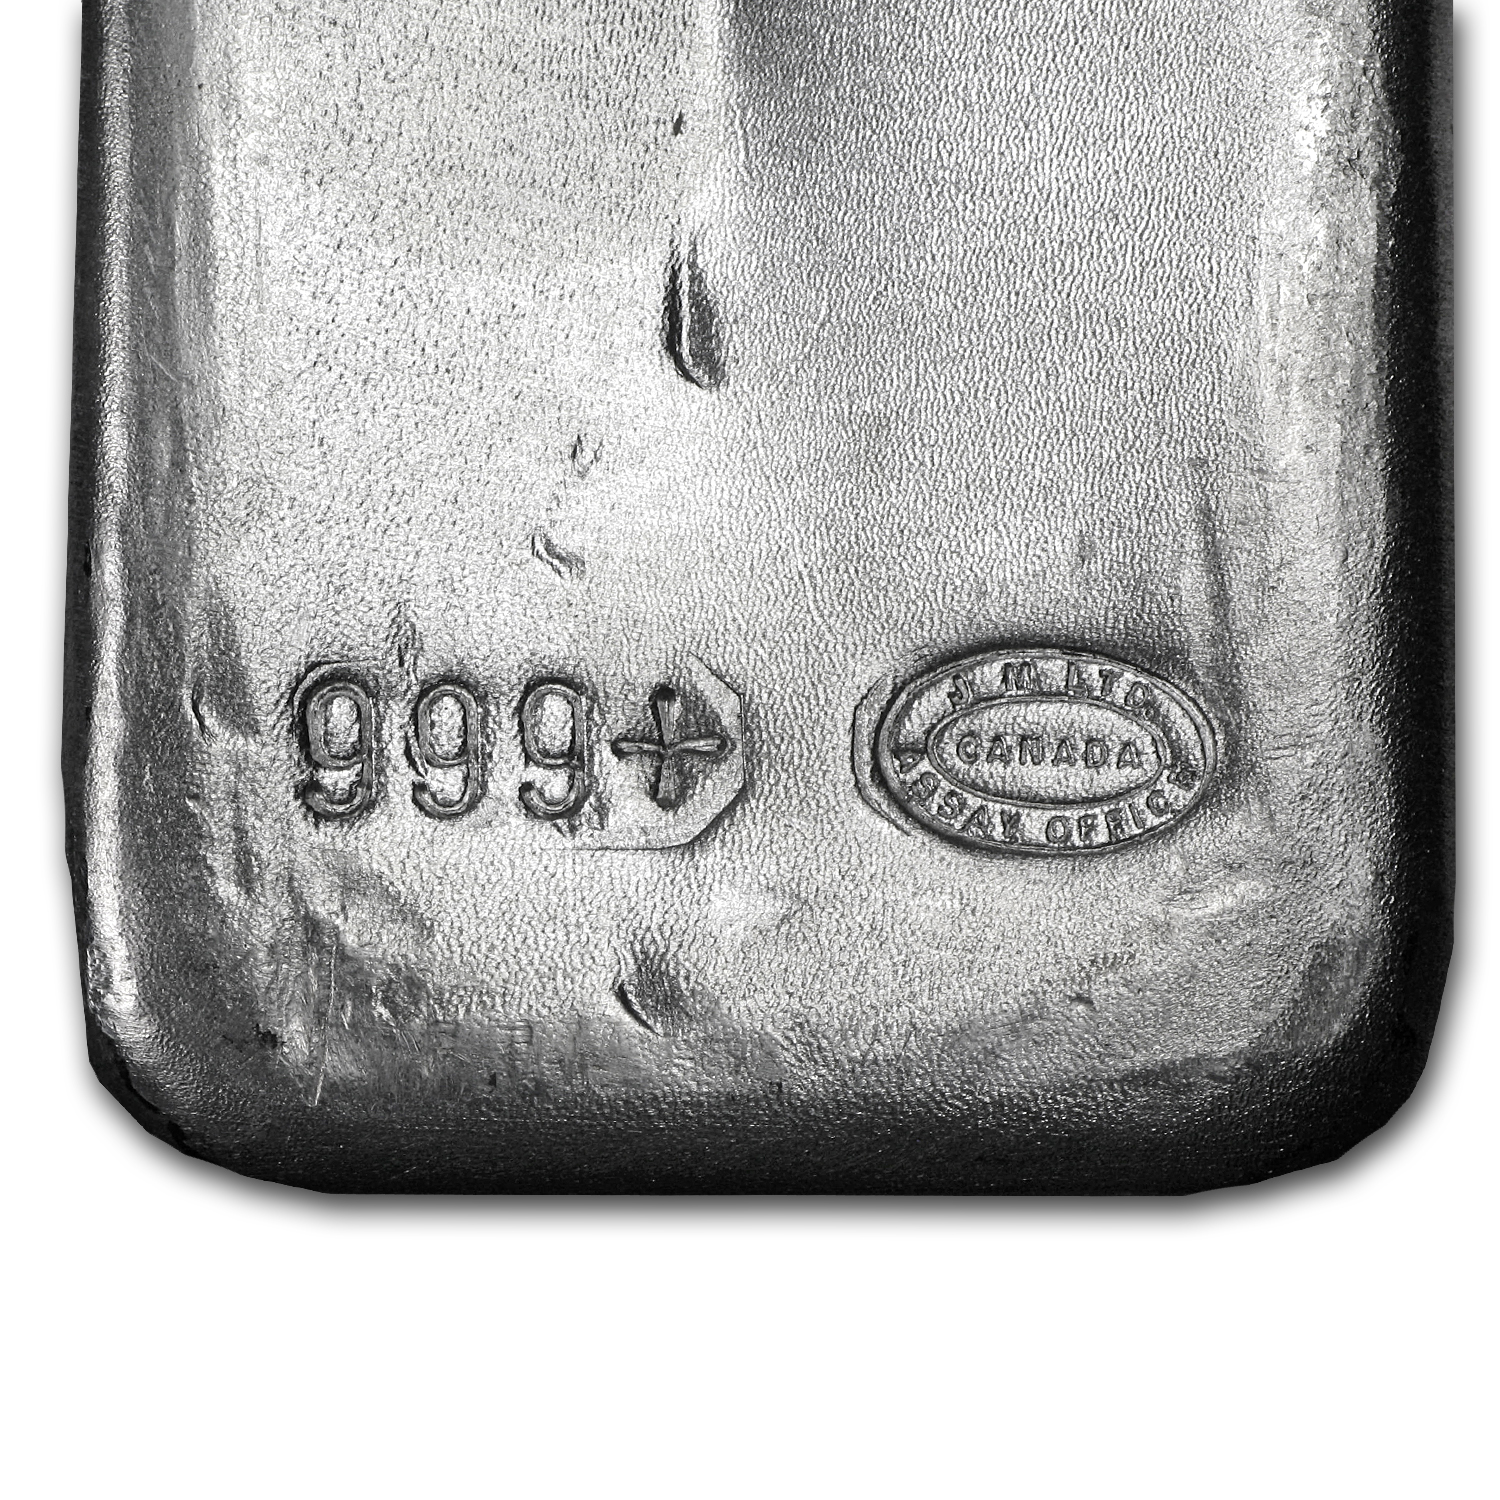 100 oz Silver Bars - Johnson Matthey (Mocatta Metals Corp)